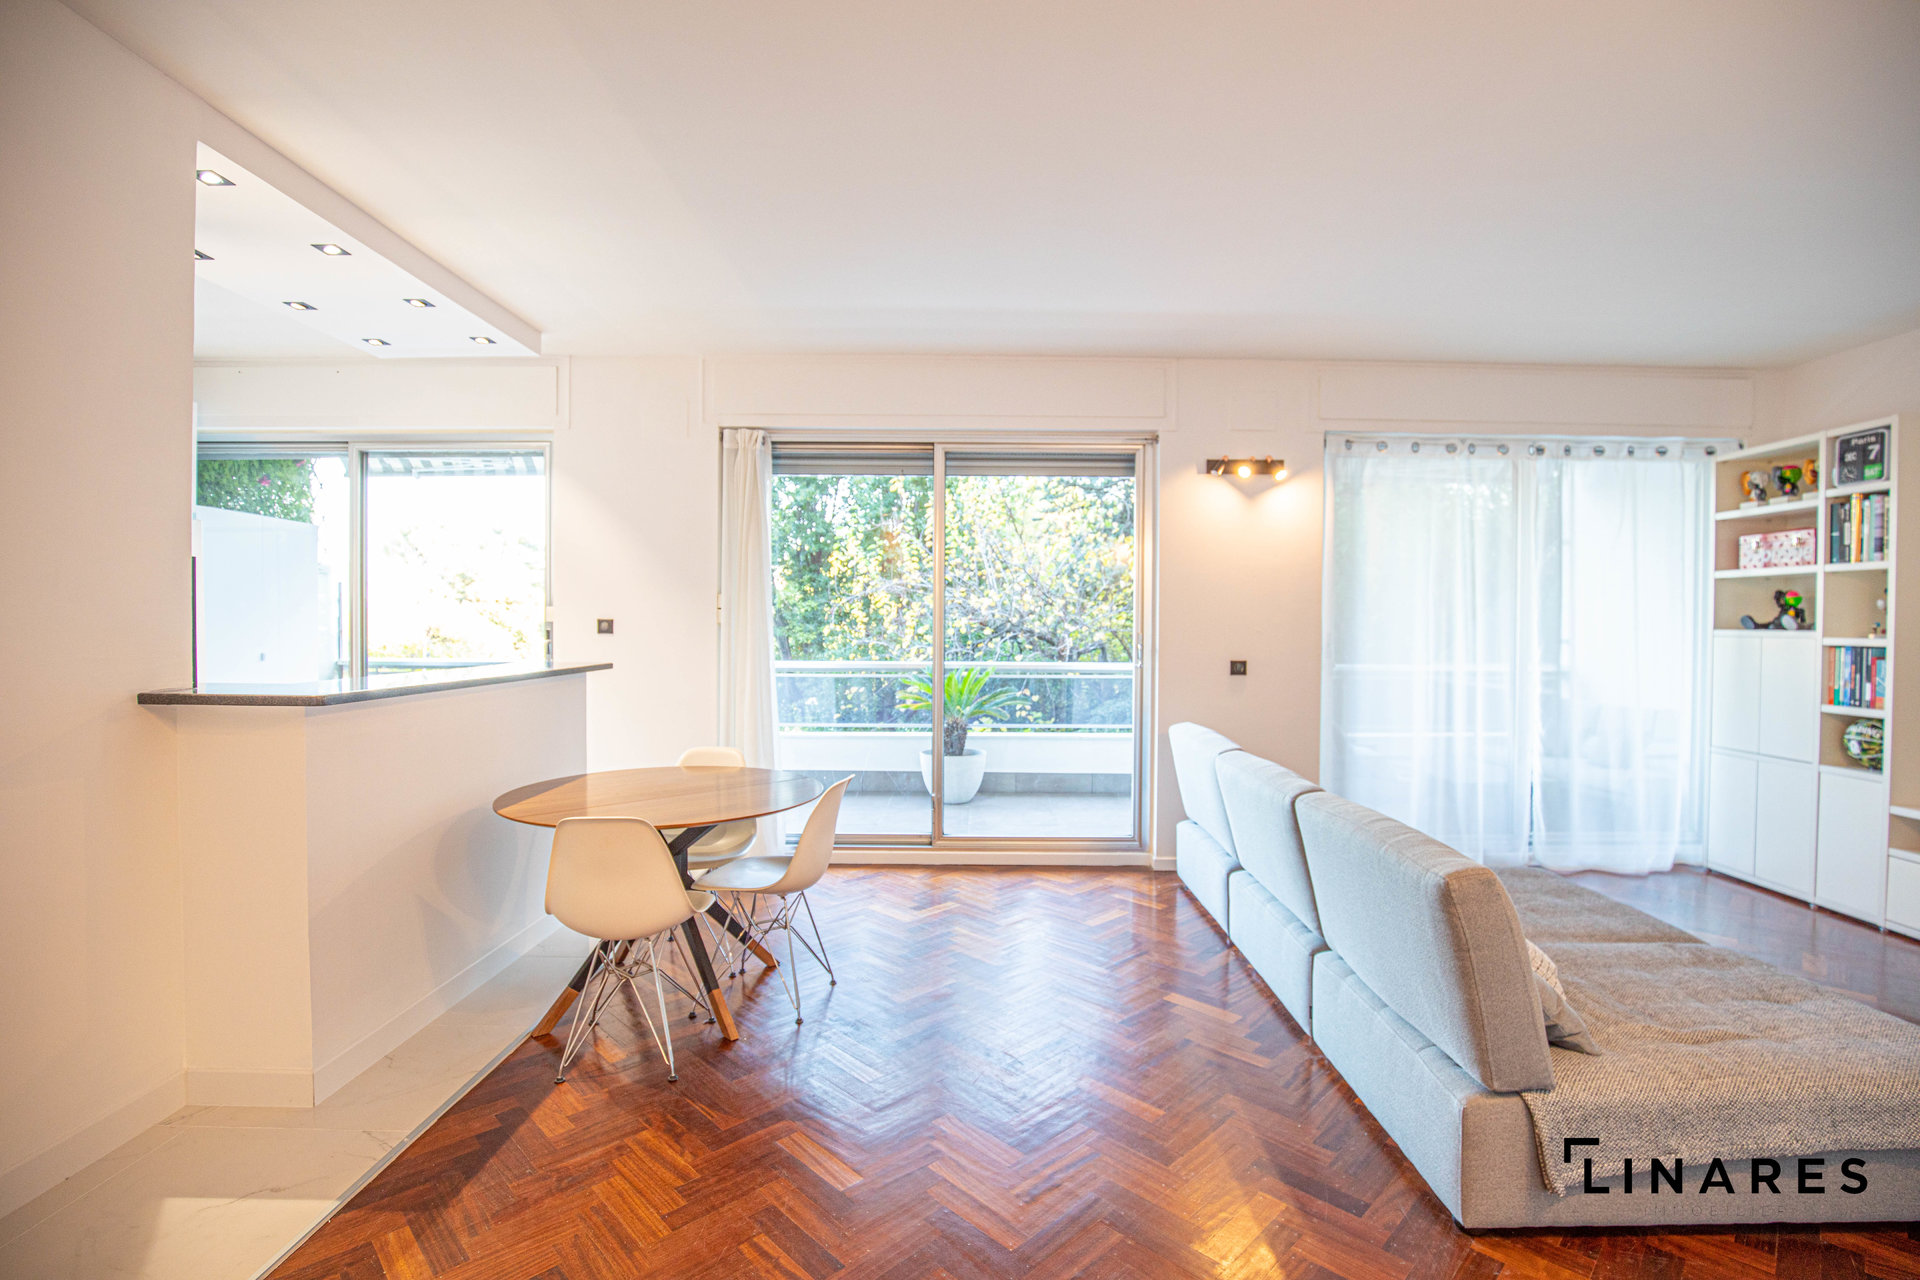 GOOD VIBES - Appartement de Type 2 de 52 m2